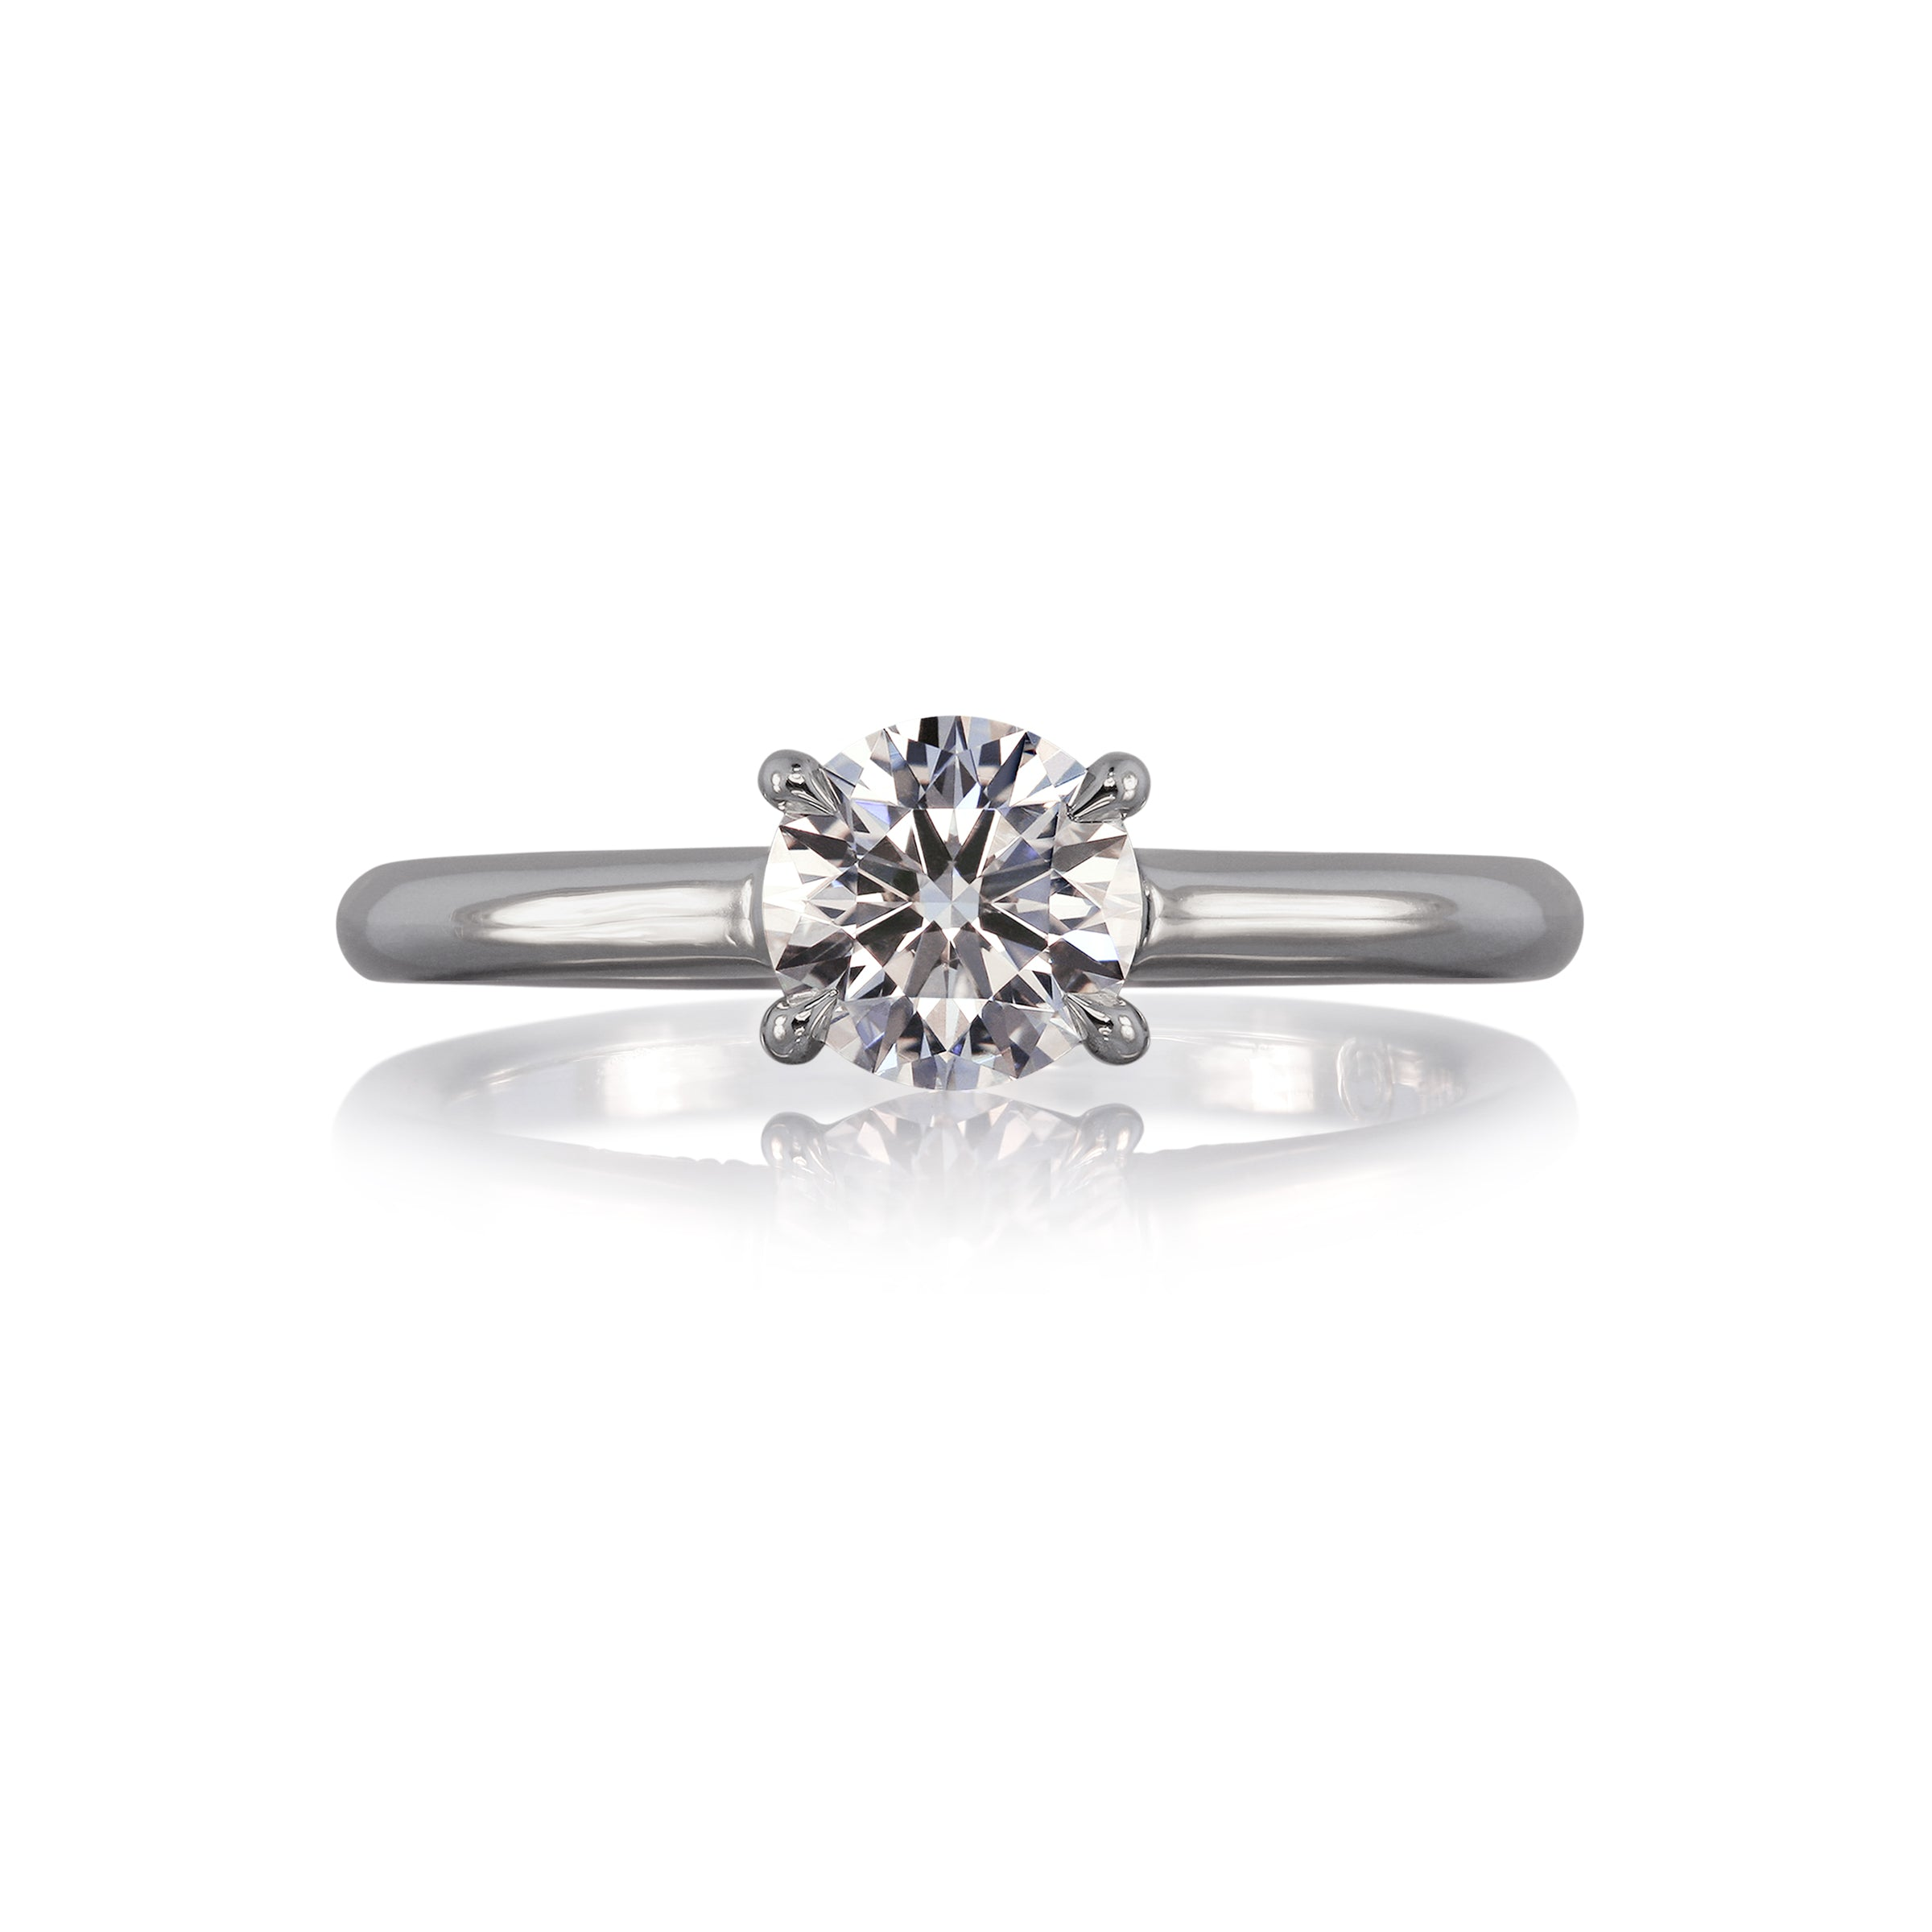 Lazare Ideal Cut Diamond Ring, 1 Carat, 18K White Gold